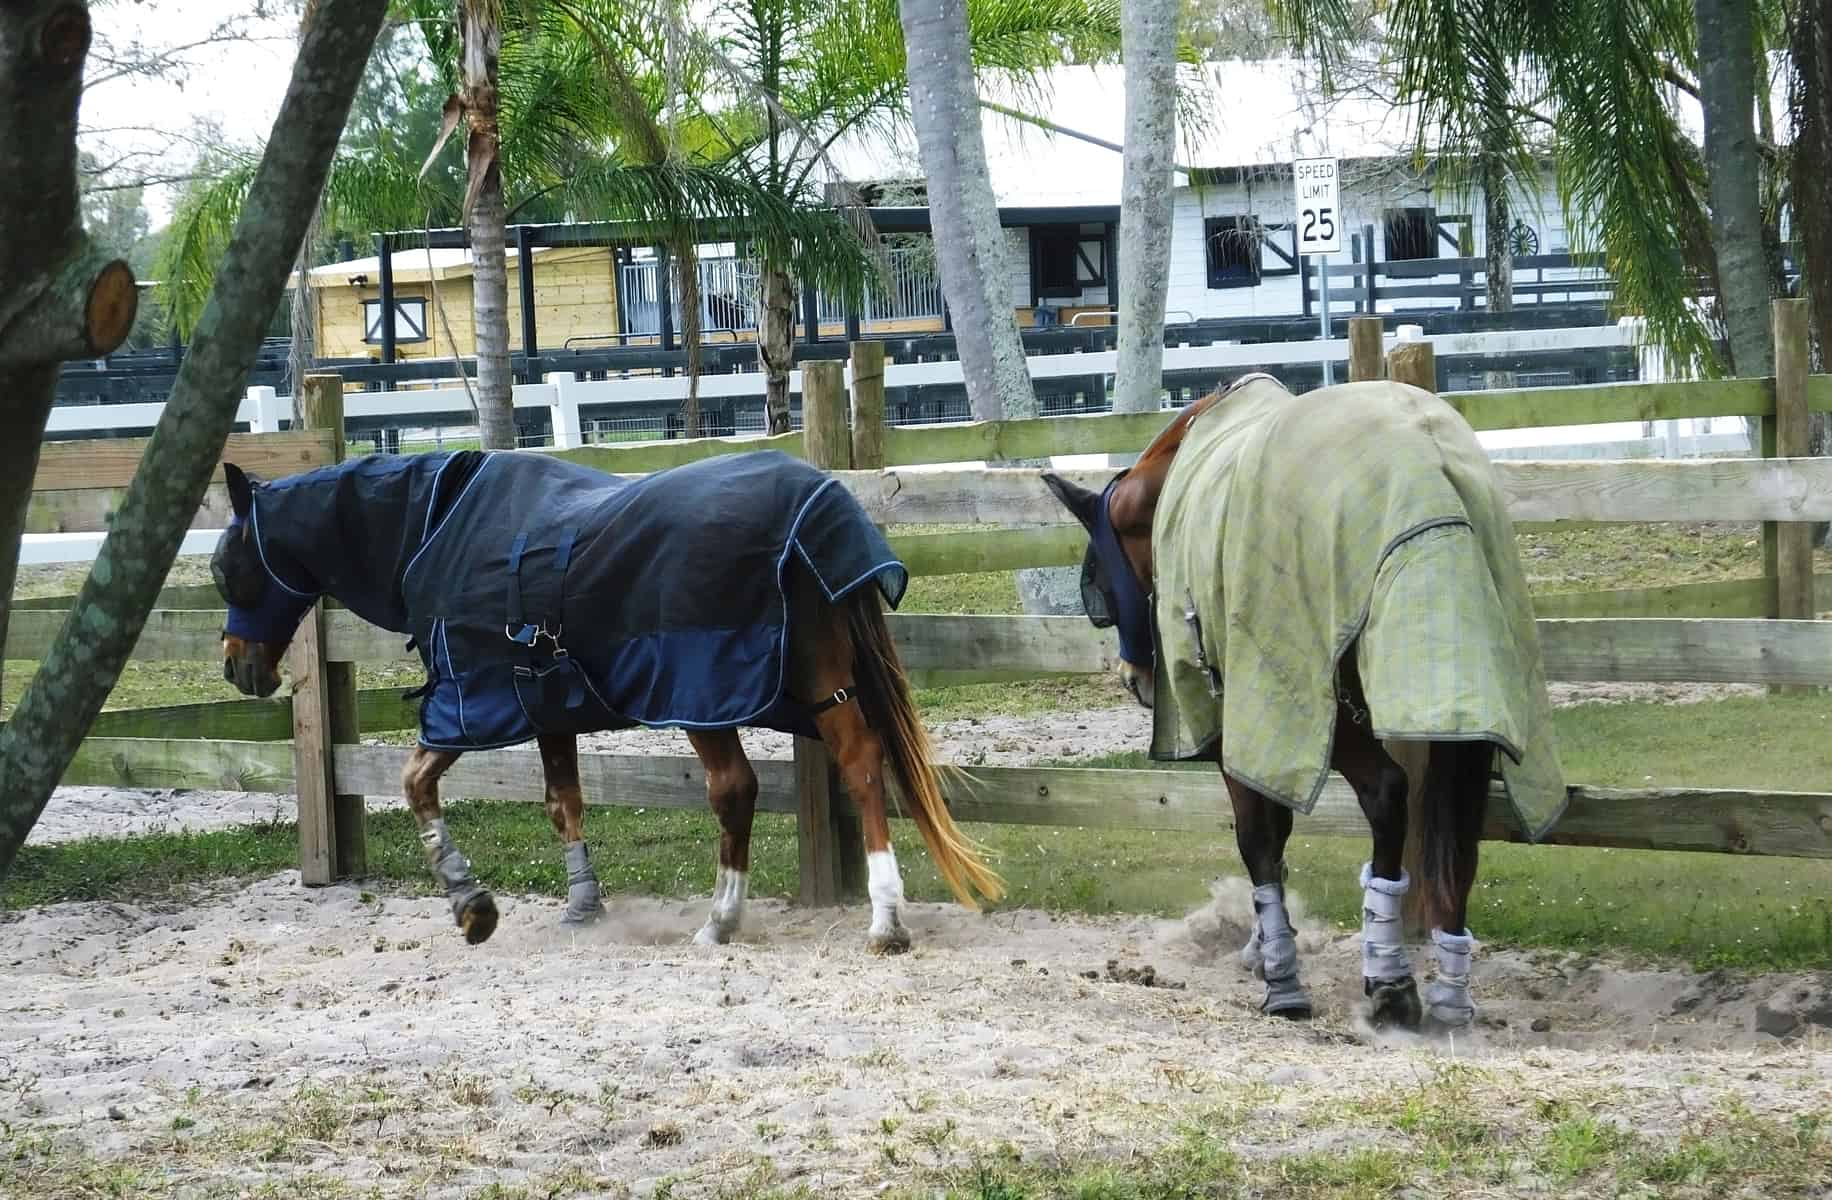 Horses wearing fly sheets